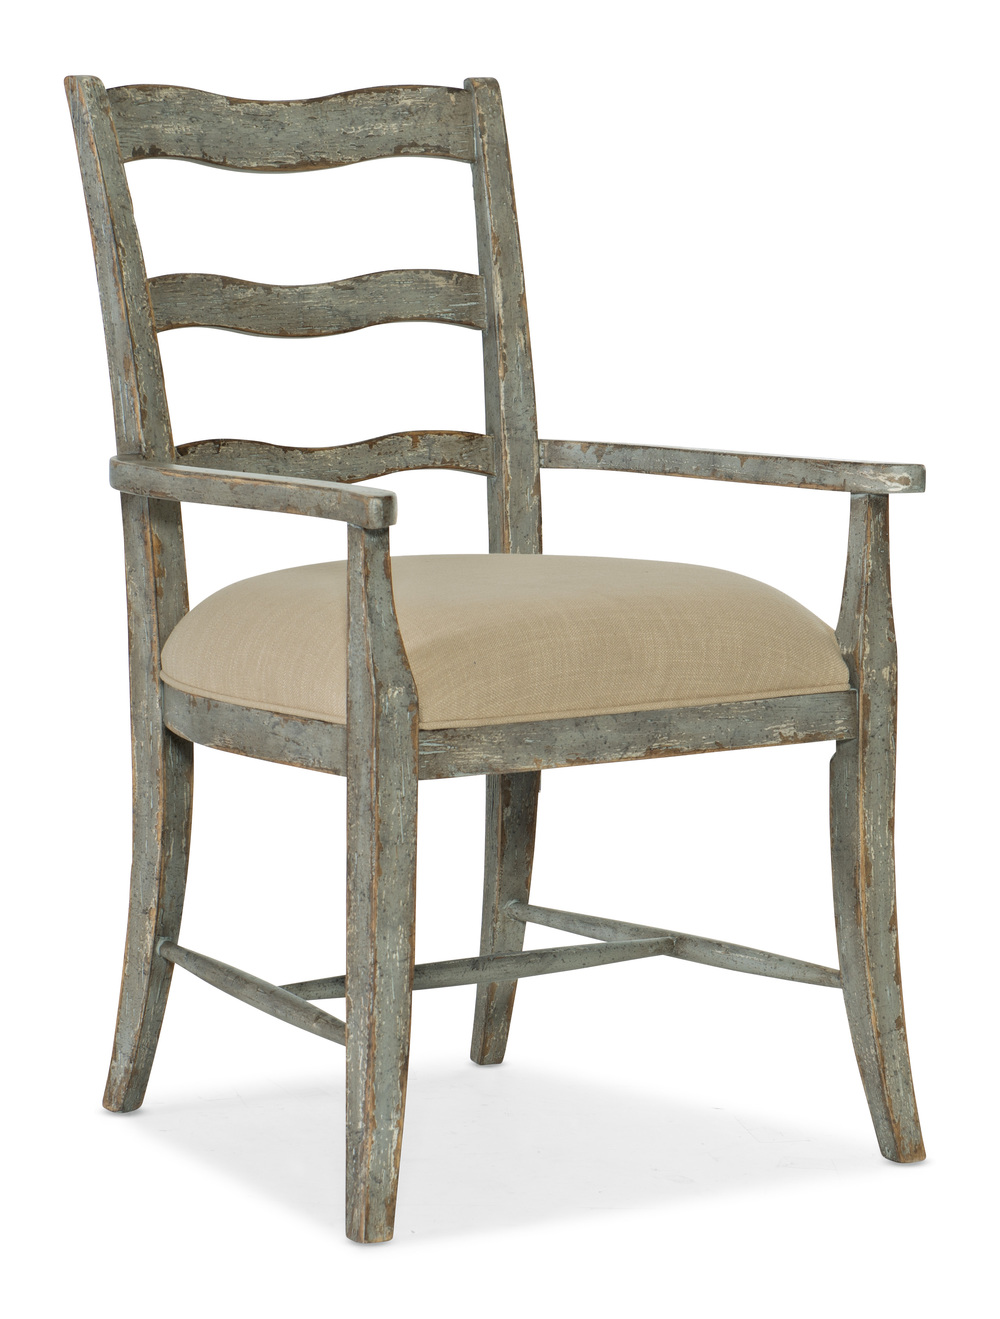 Hooker Furniture - La Riva Upholstered Seat Arm Chair